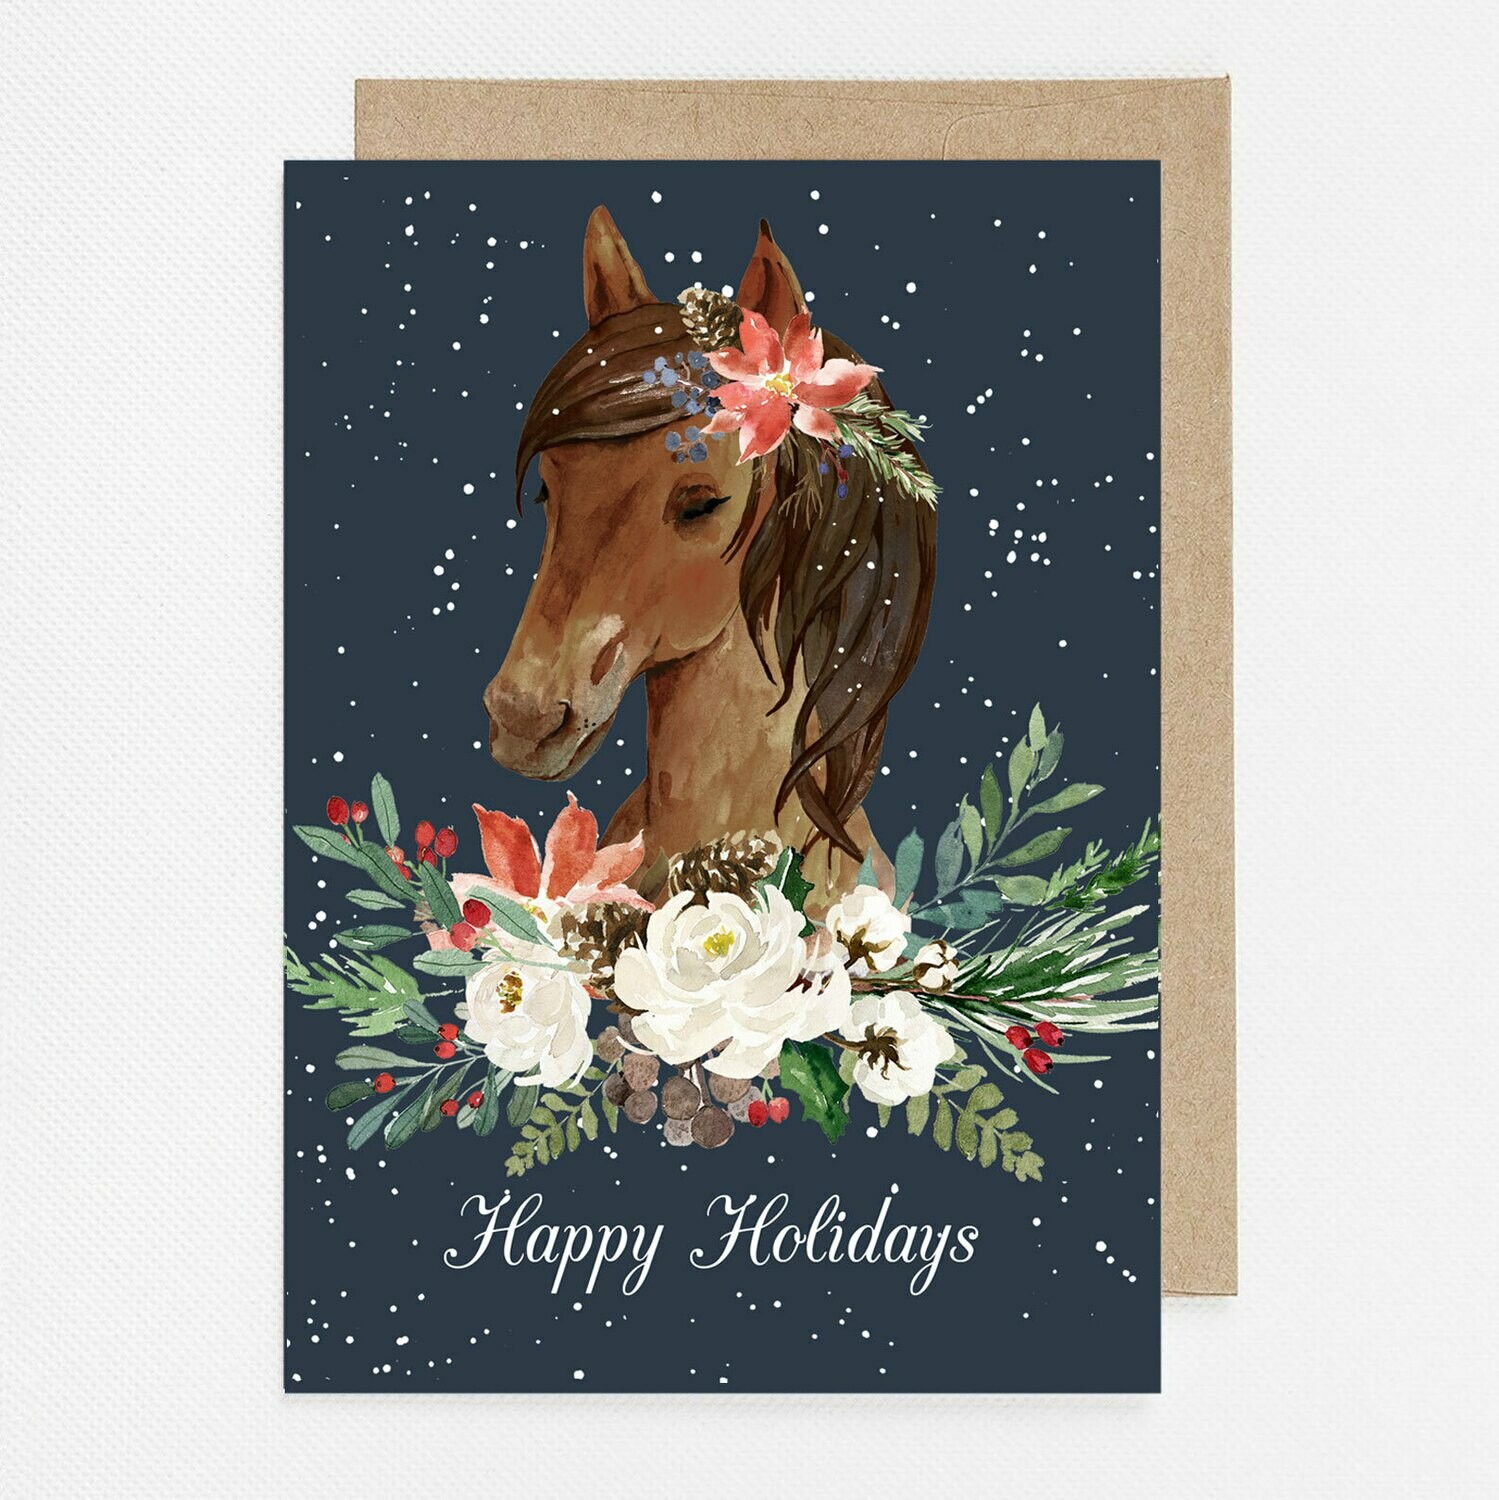 Sweet Winter Horse Watercolor Christmas Card with inside text